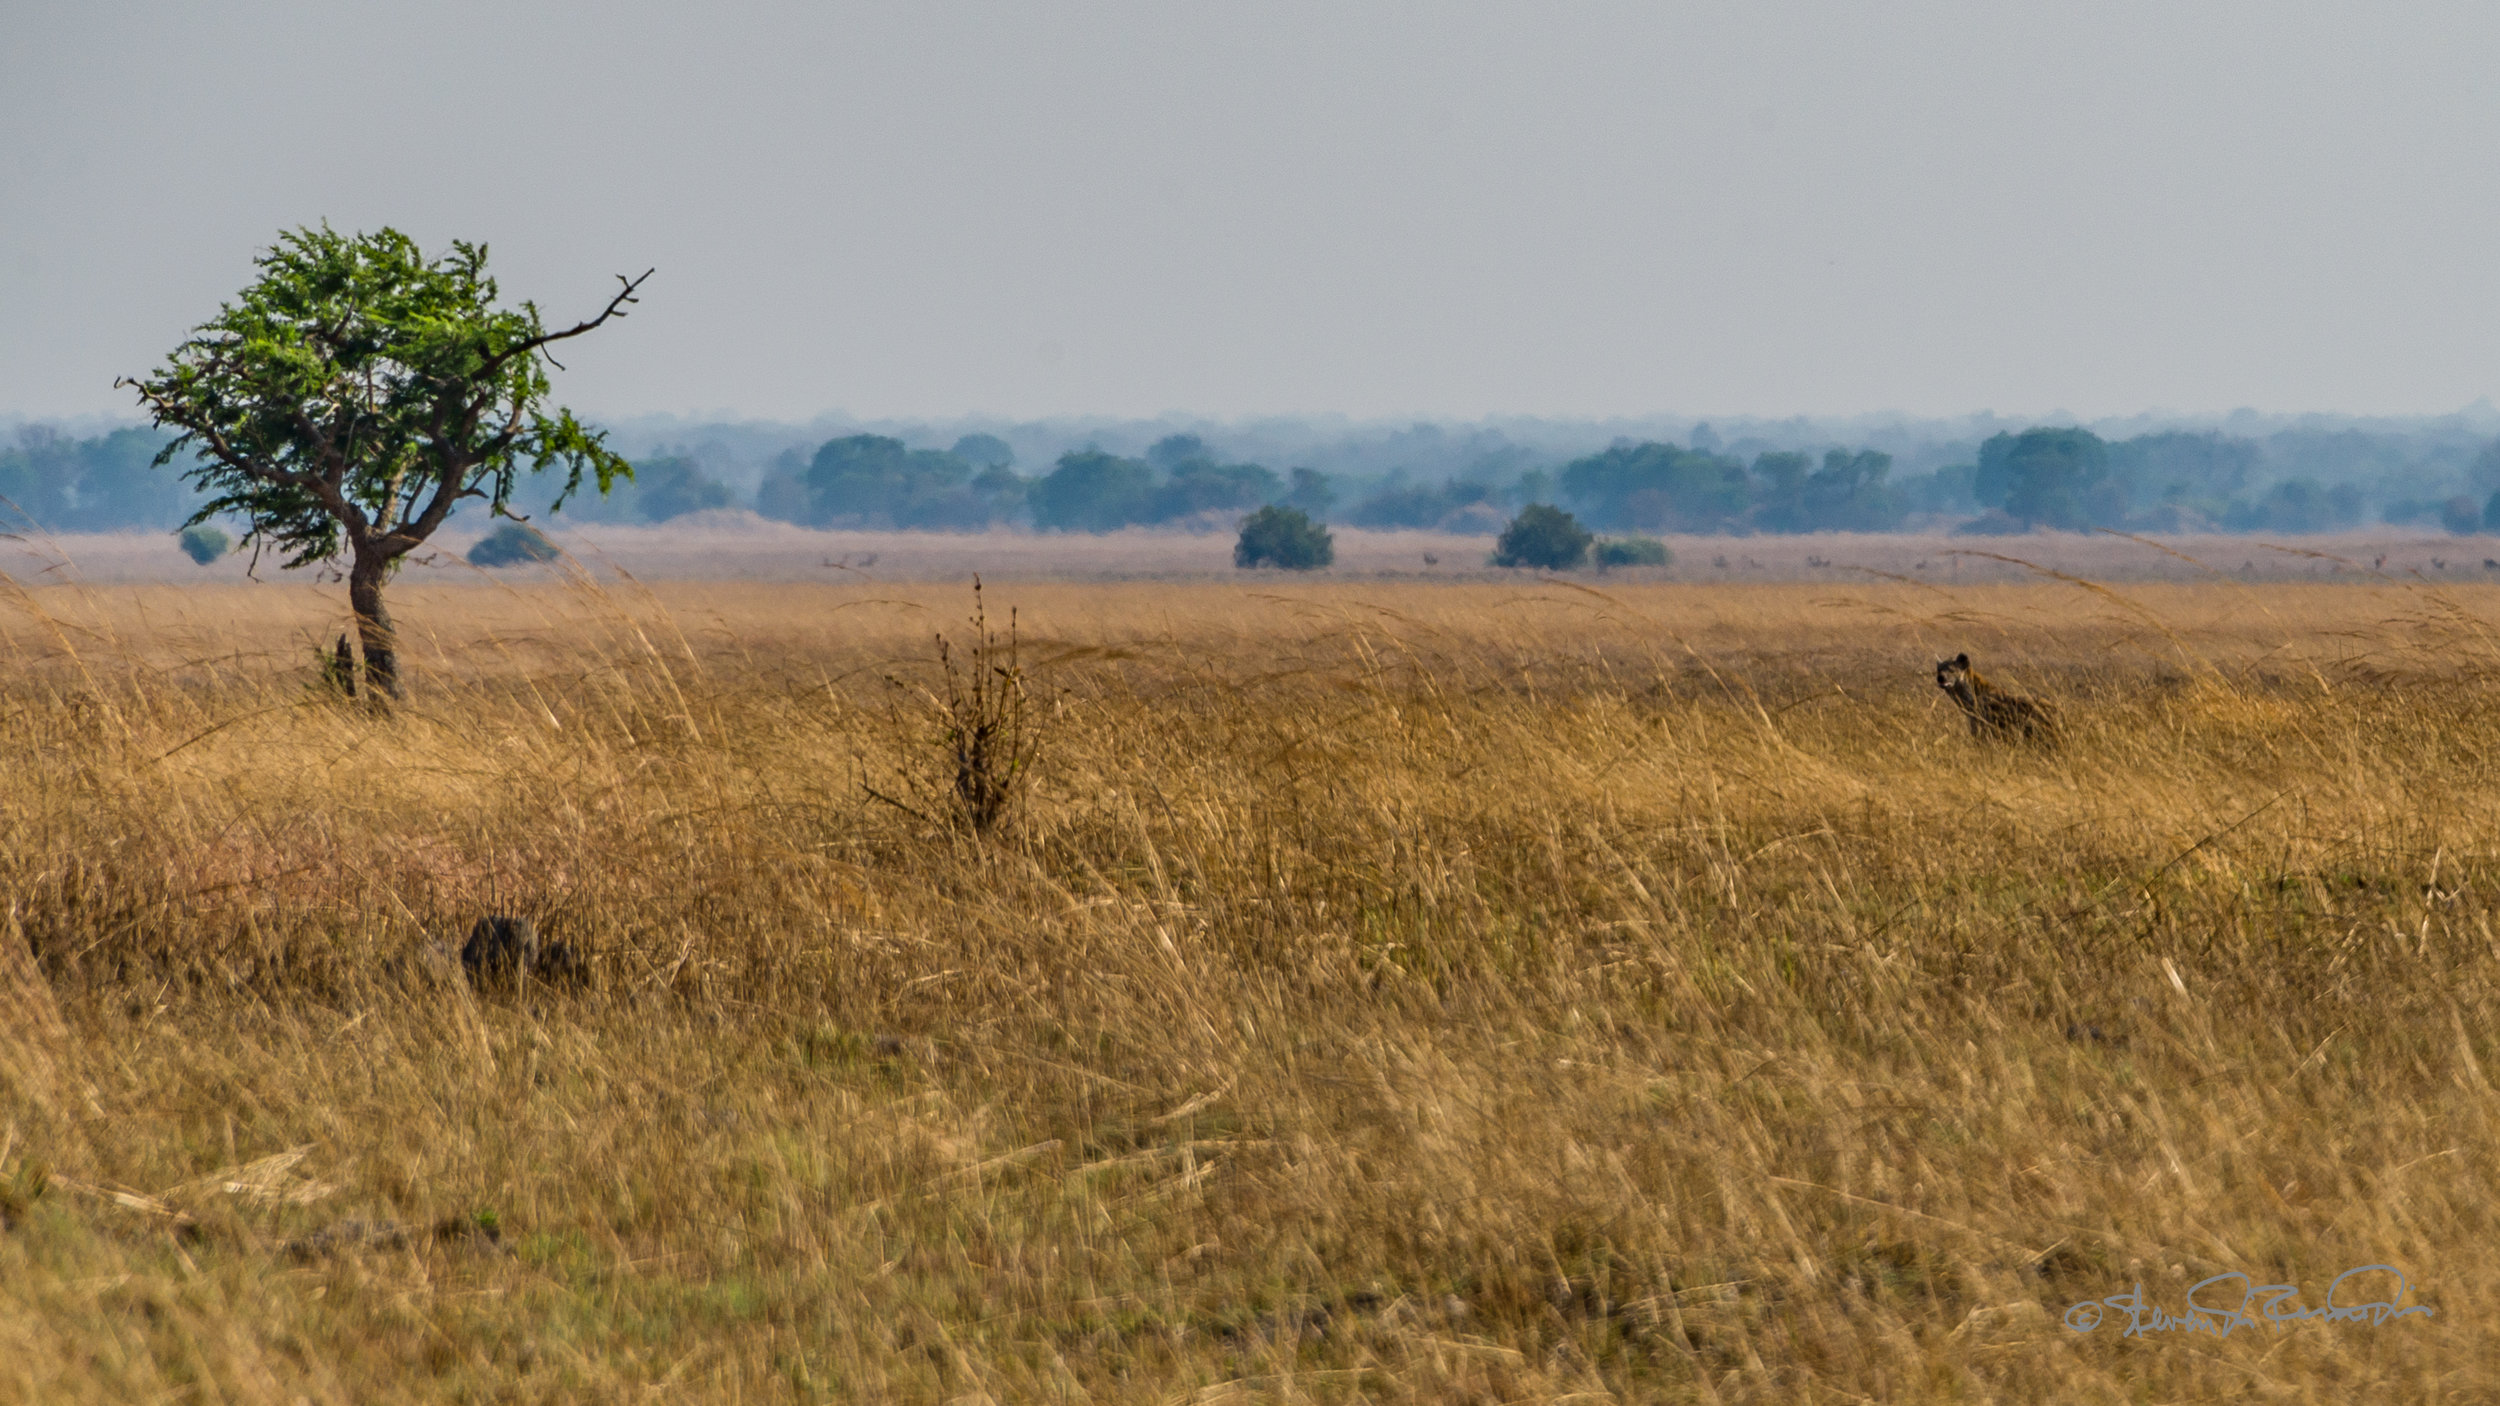 PICTURED:  A hyena lurks in the grasslands of Kafue National Park, Zambia.  Photo credit Steven DosRemedios,    CC.4